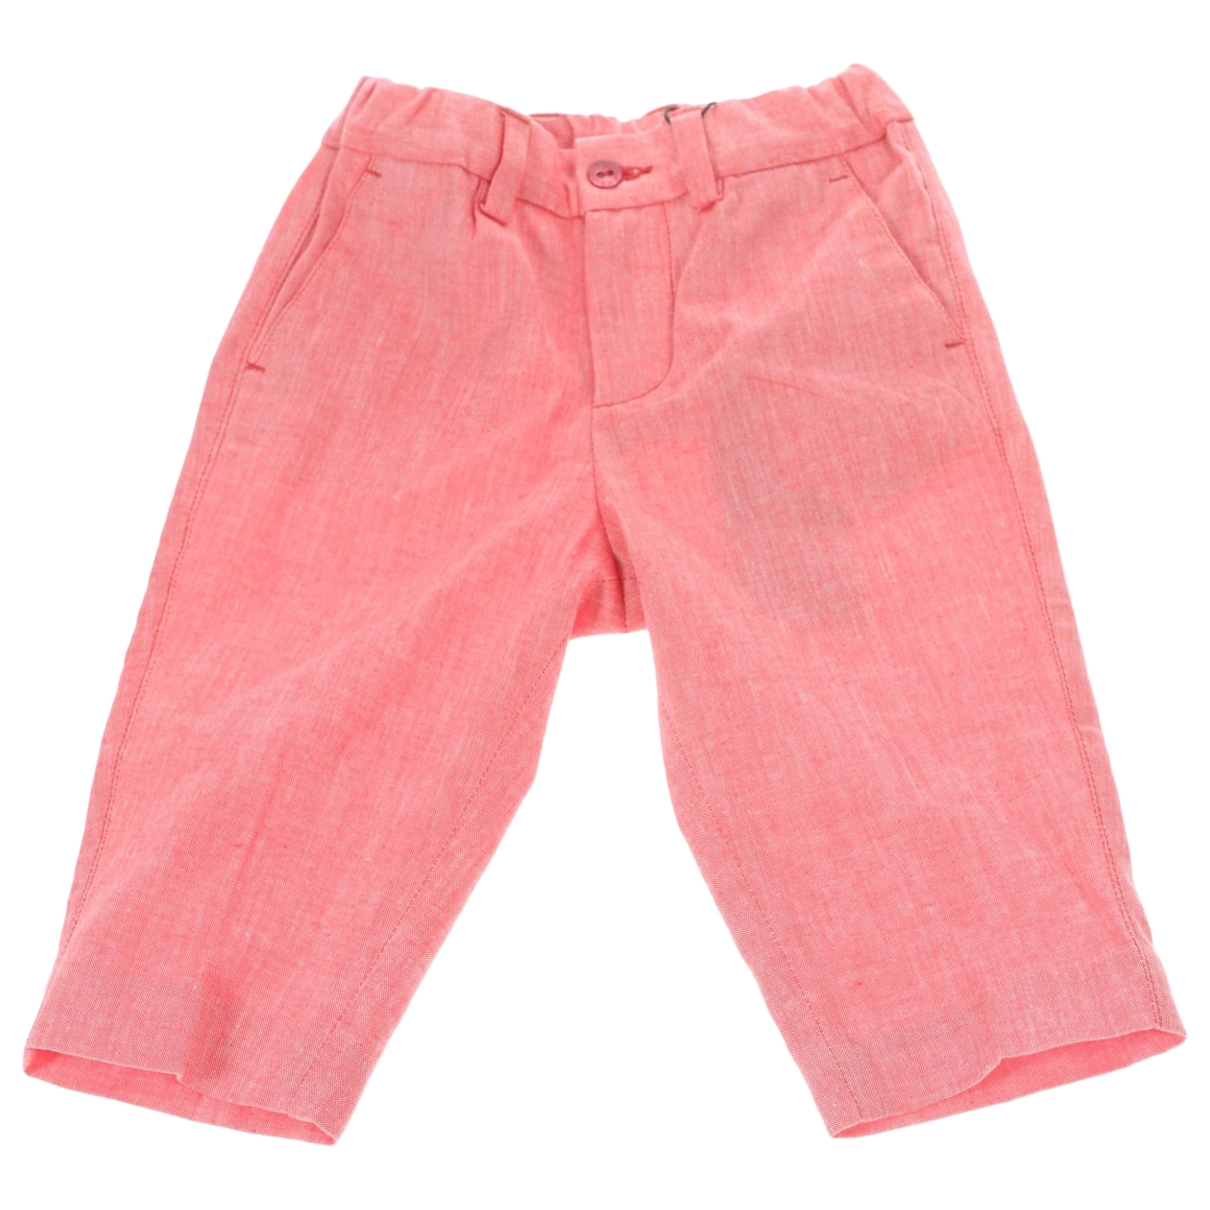 Dolce & Gabbana \N Pink Cotton Trousers for Kids 9 months - until 28 inches UK